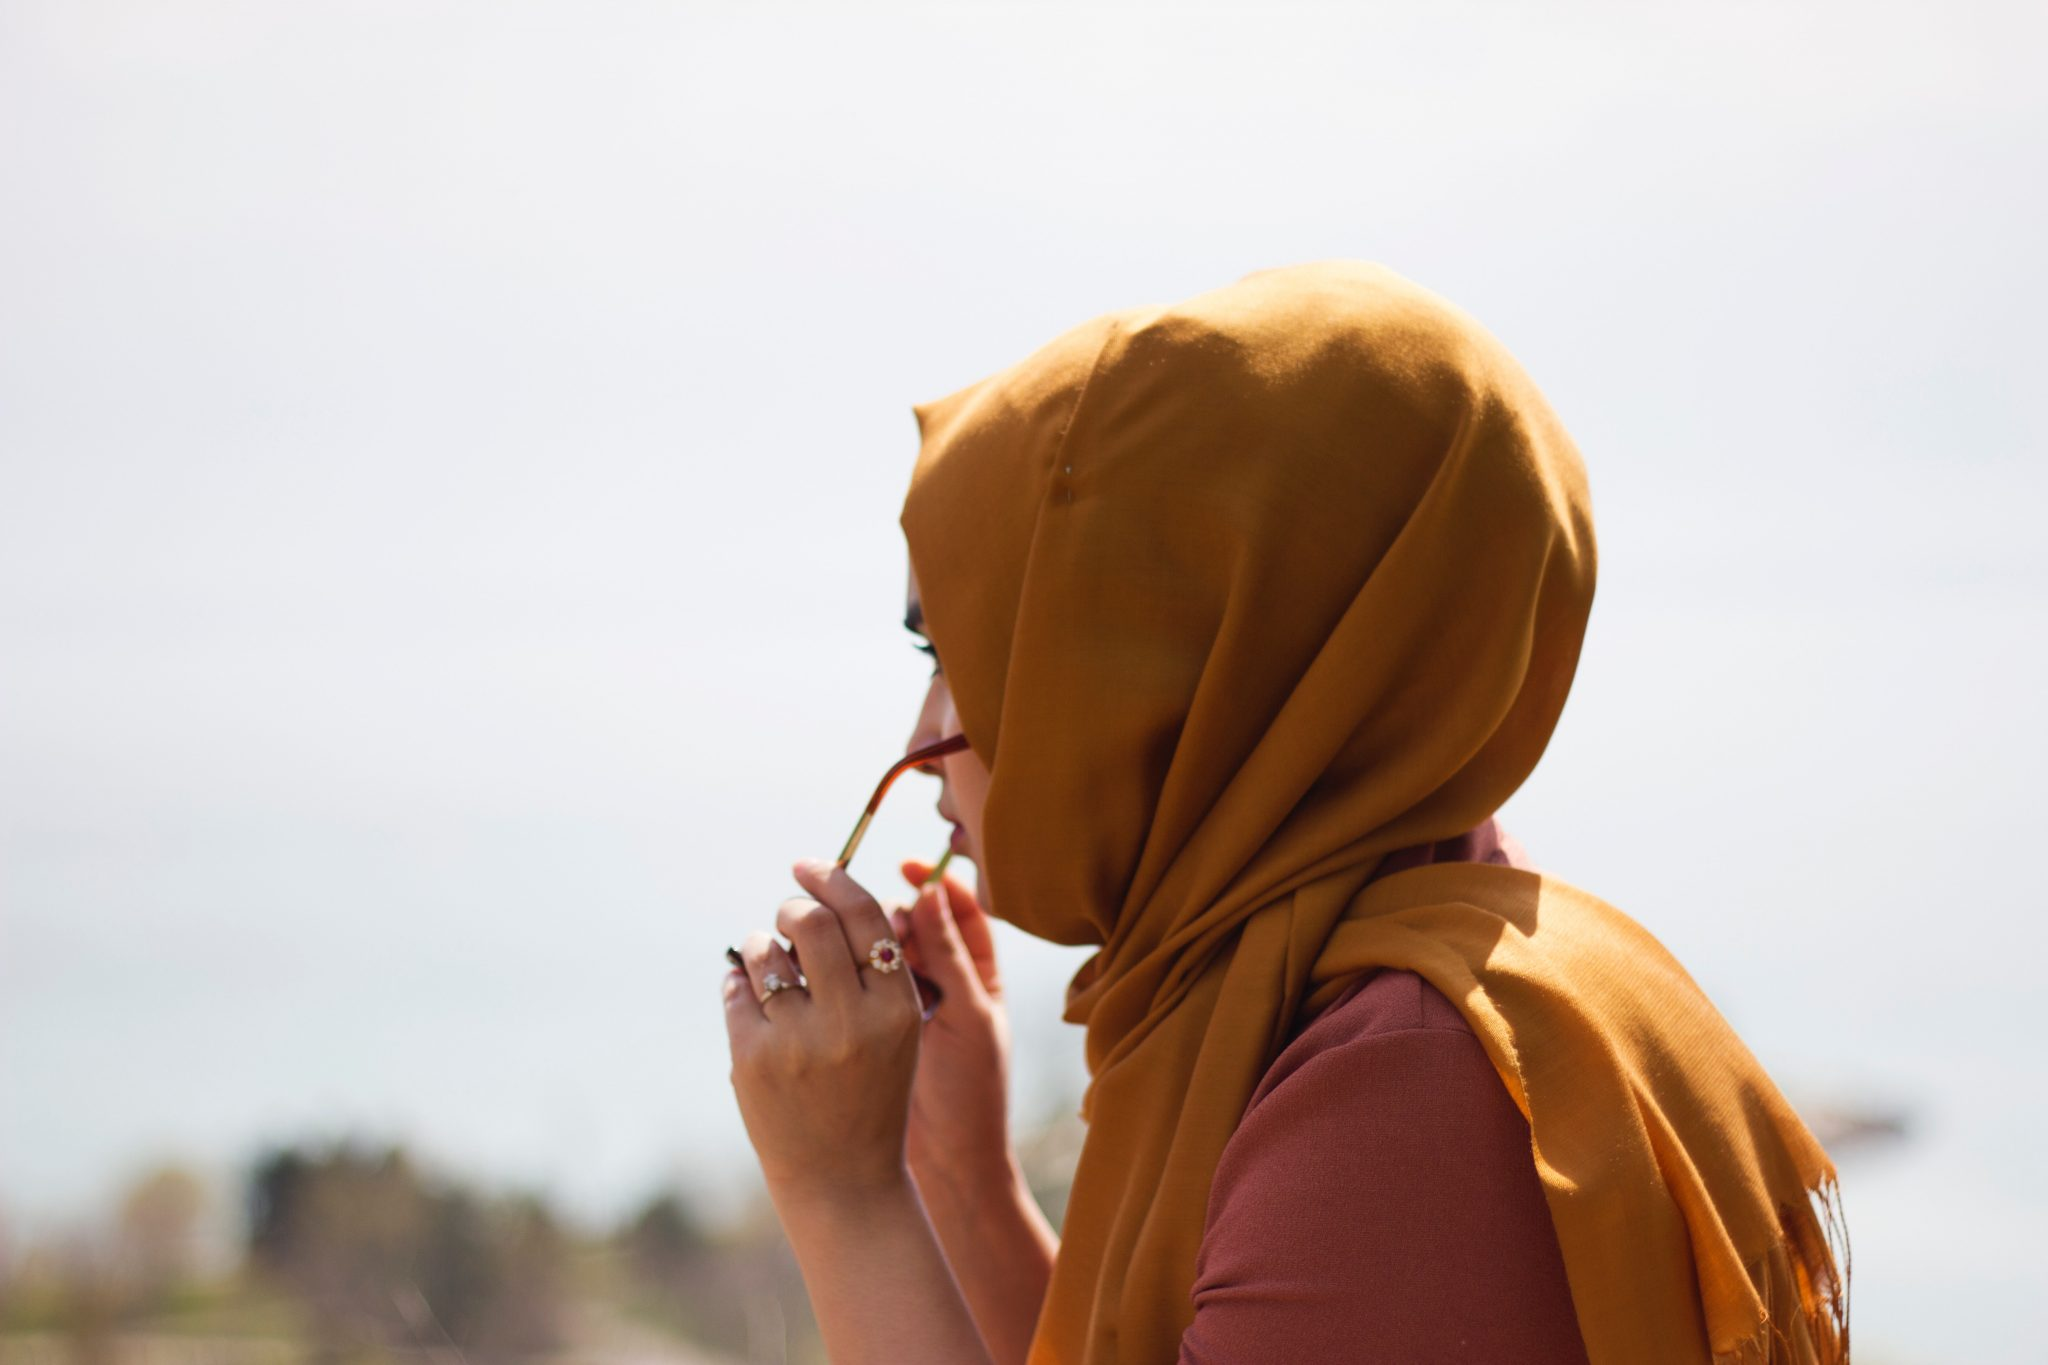 Why are so many Muslim women able to relate to feminism?